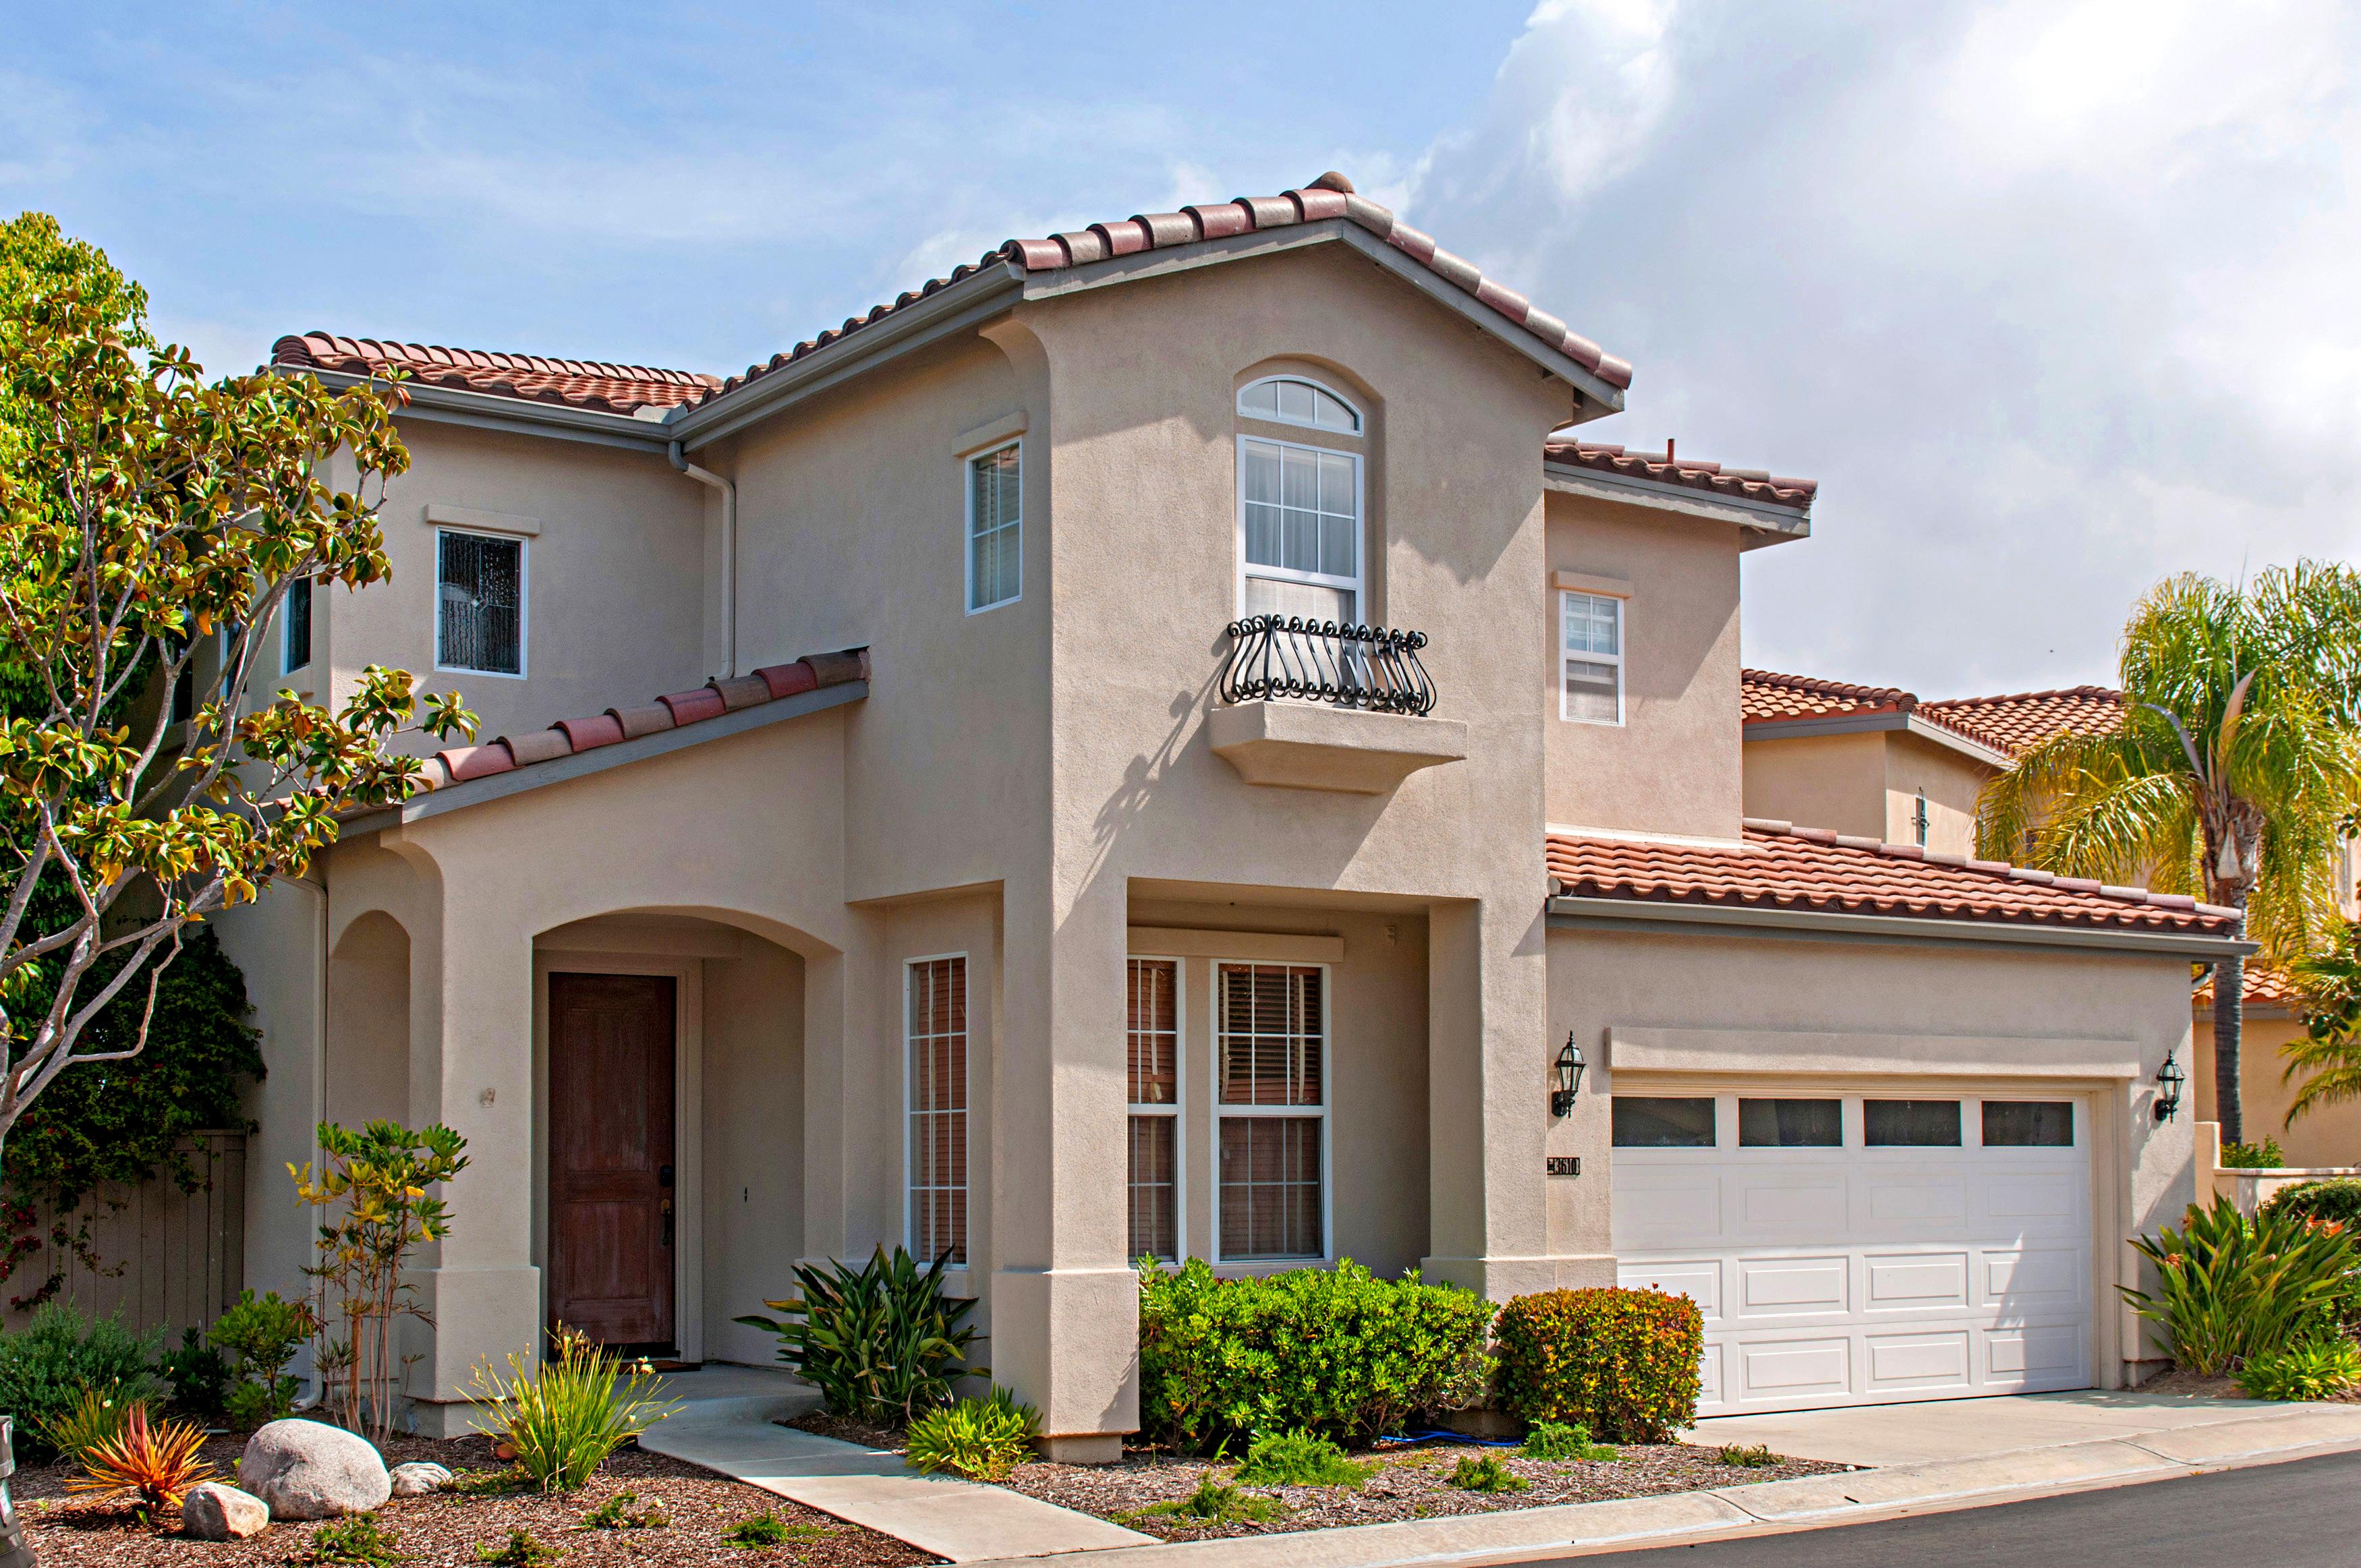 Welcome to San Diego! This home is professionally managed by TurnKey Vacation Rentals.